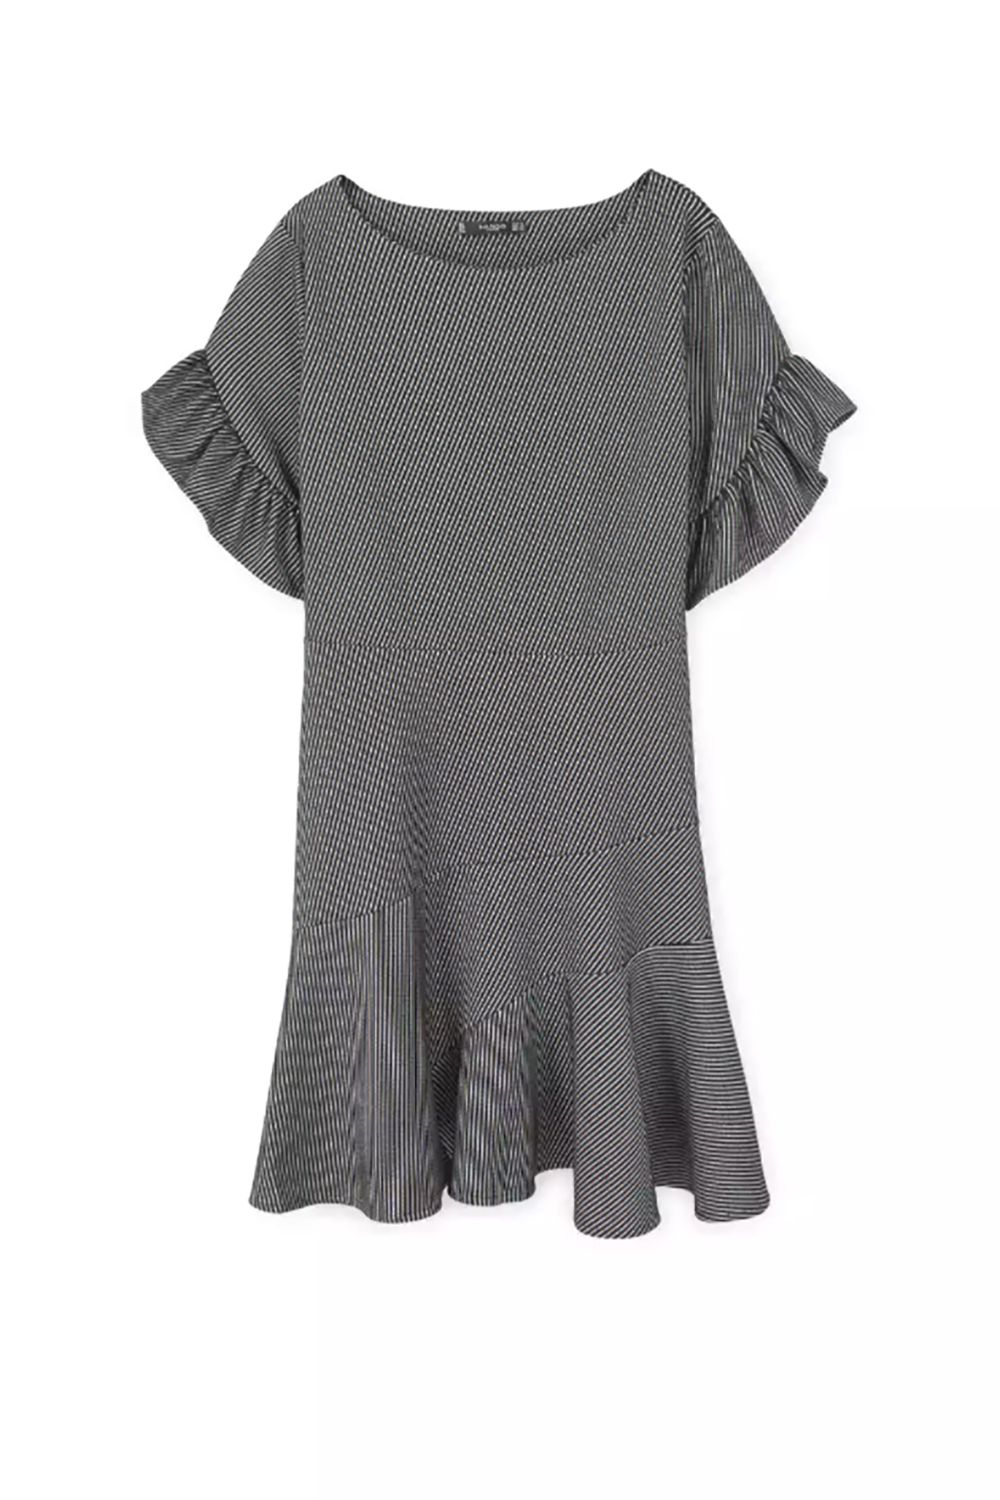 """<p>More structured than it looks (read: okay for office) and will increase your shoulder width significantly (in a fashion-y way). </p><p>$50, <a href=""""http://shop.mango.com/US/p0/women/clothing/dresses/short-/ruffled-sleeve-dress?id=83030294_95&n=1&s=prendas.vestidos"""" target=""""_blank"""" data-tracking-id=""""recirc-text-link"""">shop.mango.com</a>.</p>"""